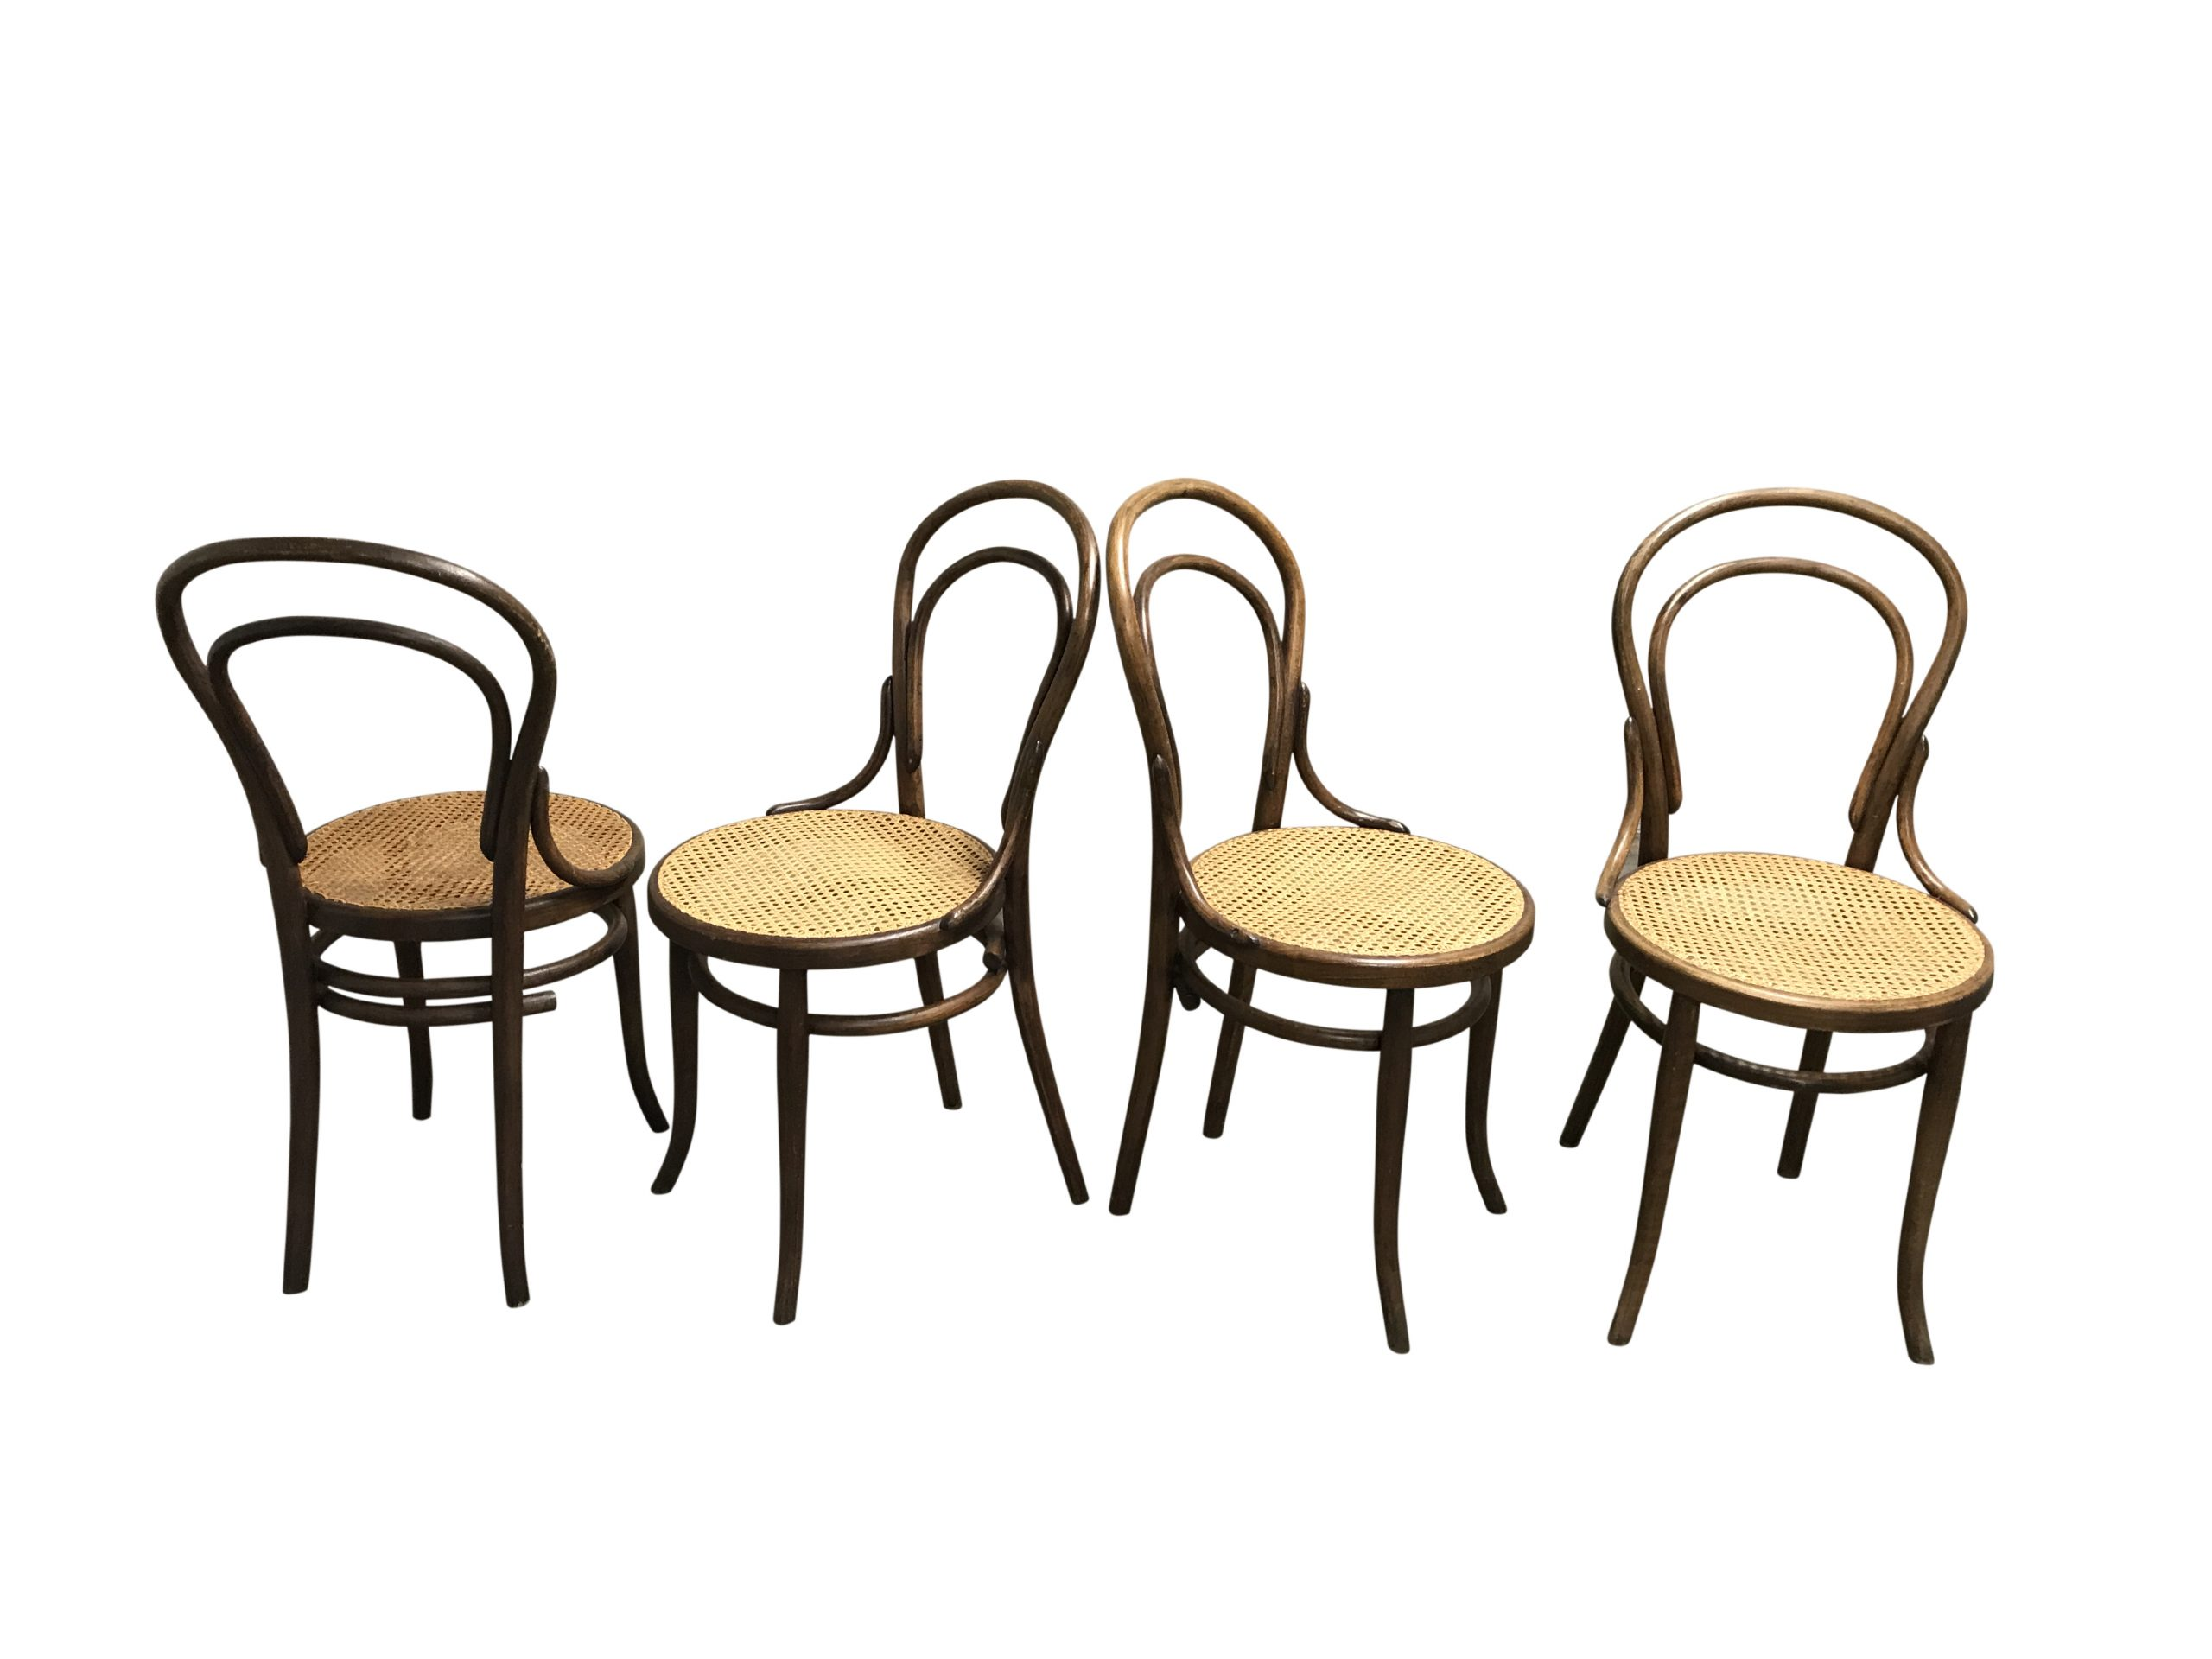 Simple but stylish design, Thonet's iconic no. 14 chair